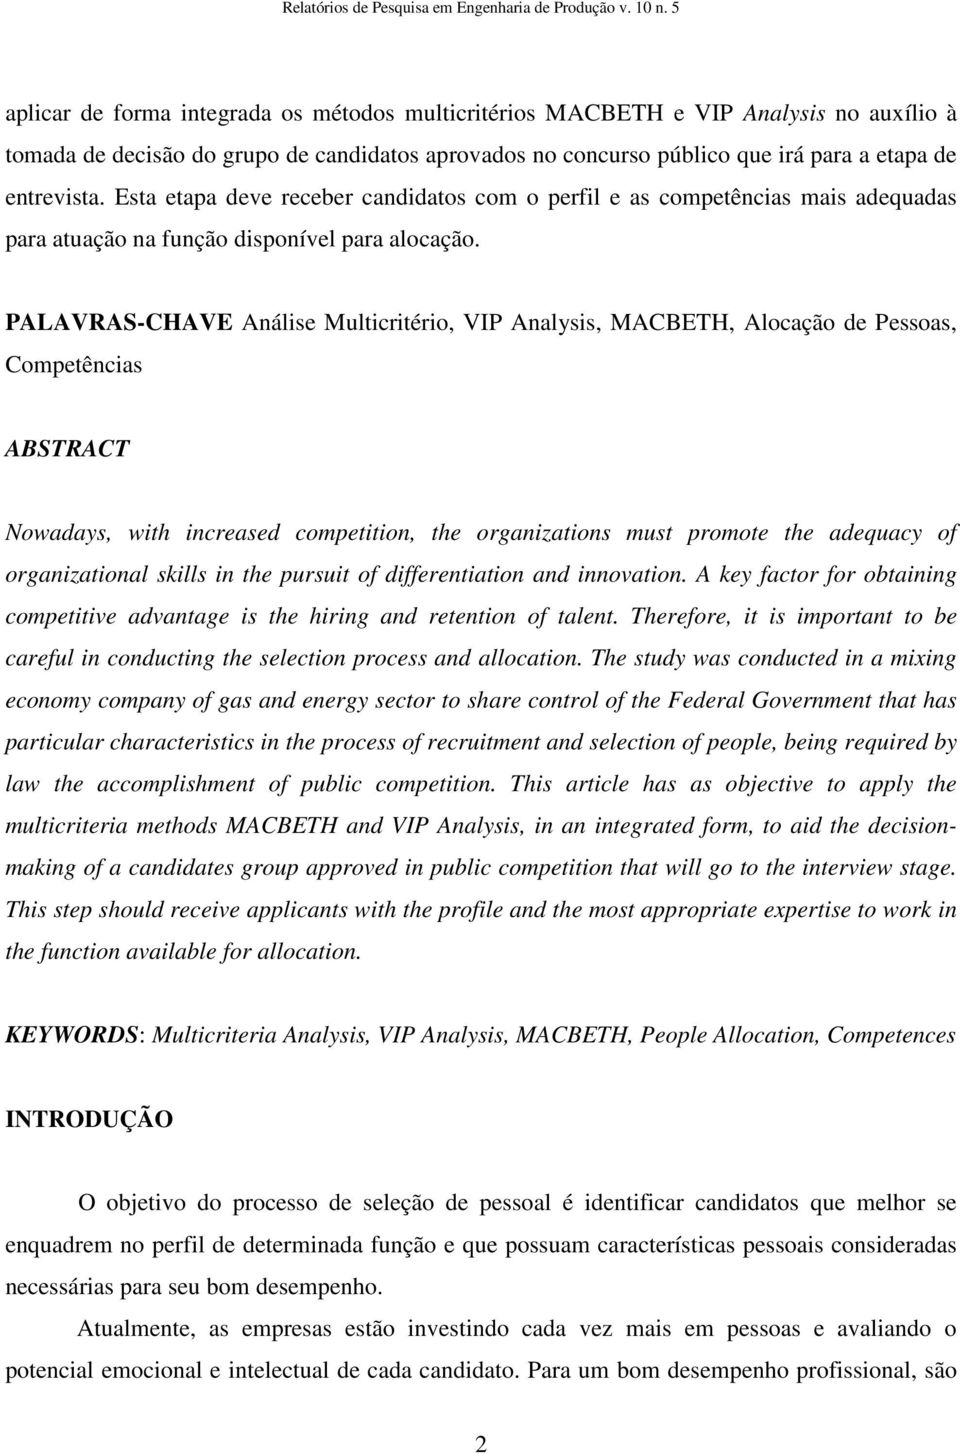 PALAVRAS-CHAVE Análise Multicritério, VIP Analysis, MACBETH, Alocação de Pessoas, Competências ABSTRACT Nowadays, with increased competition, the organizations must promote the adequacy of